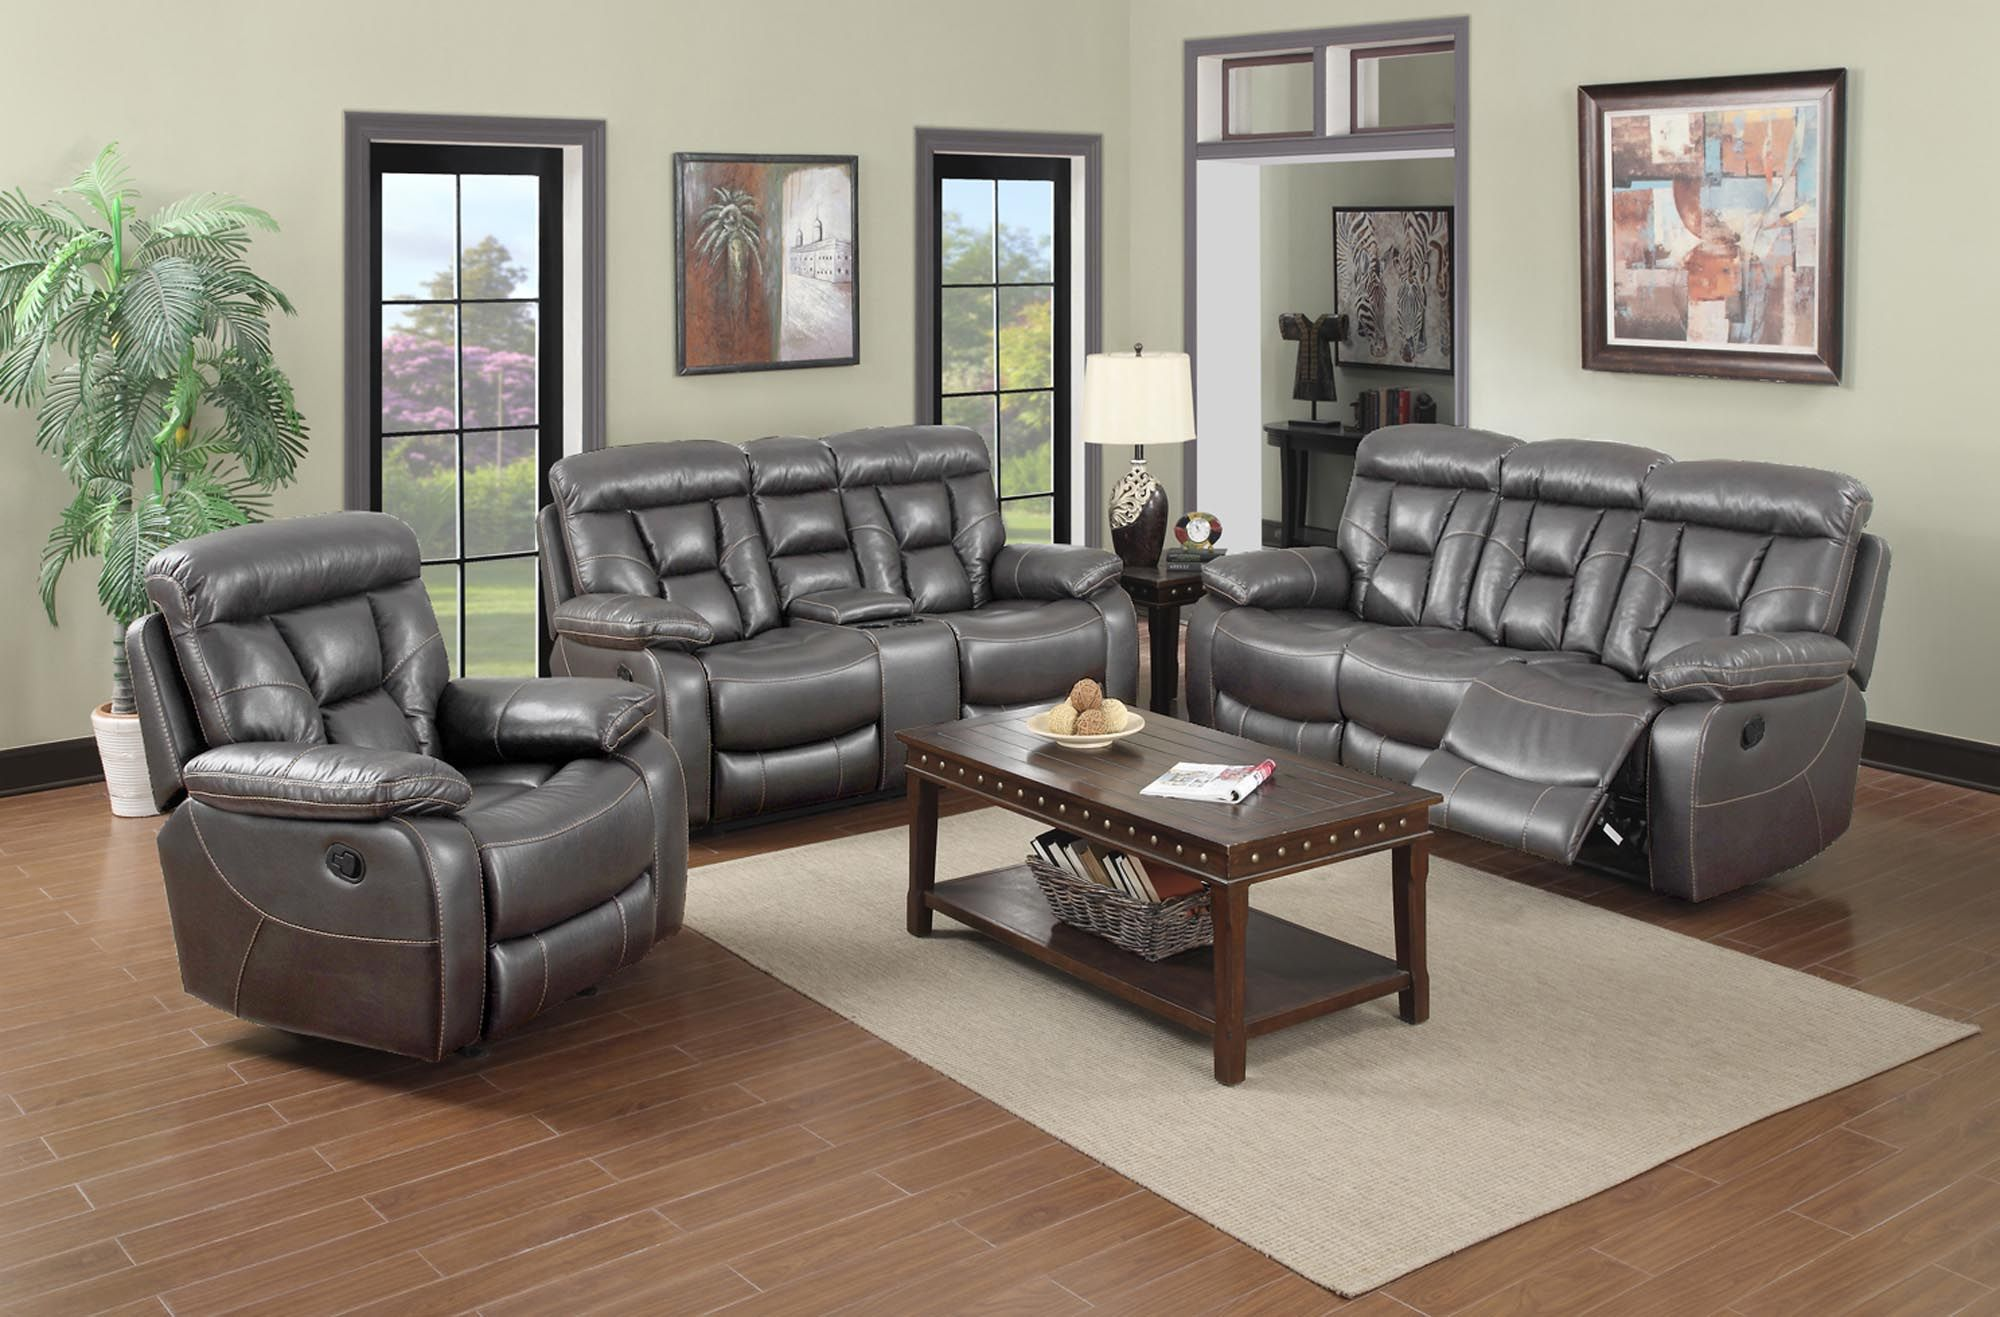 Richton Motion Collection Grey Faux Leather With Light Brown Accent Thread Cupholders And Storage Pocket Coil Living Room Sets Sofa And Loveseat Set Room Set